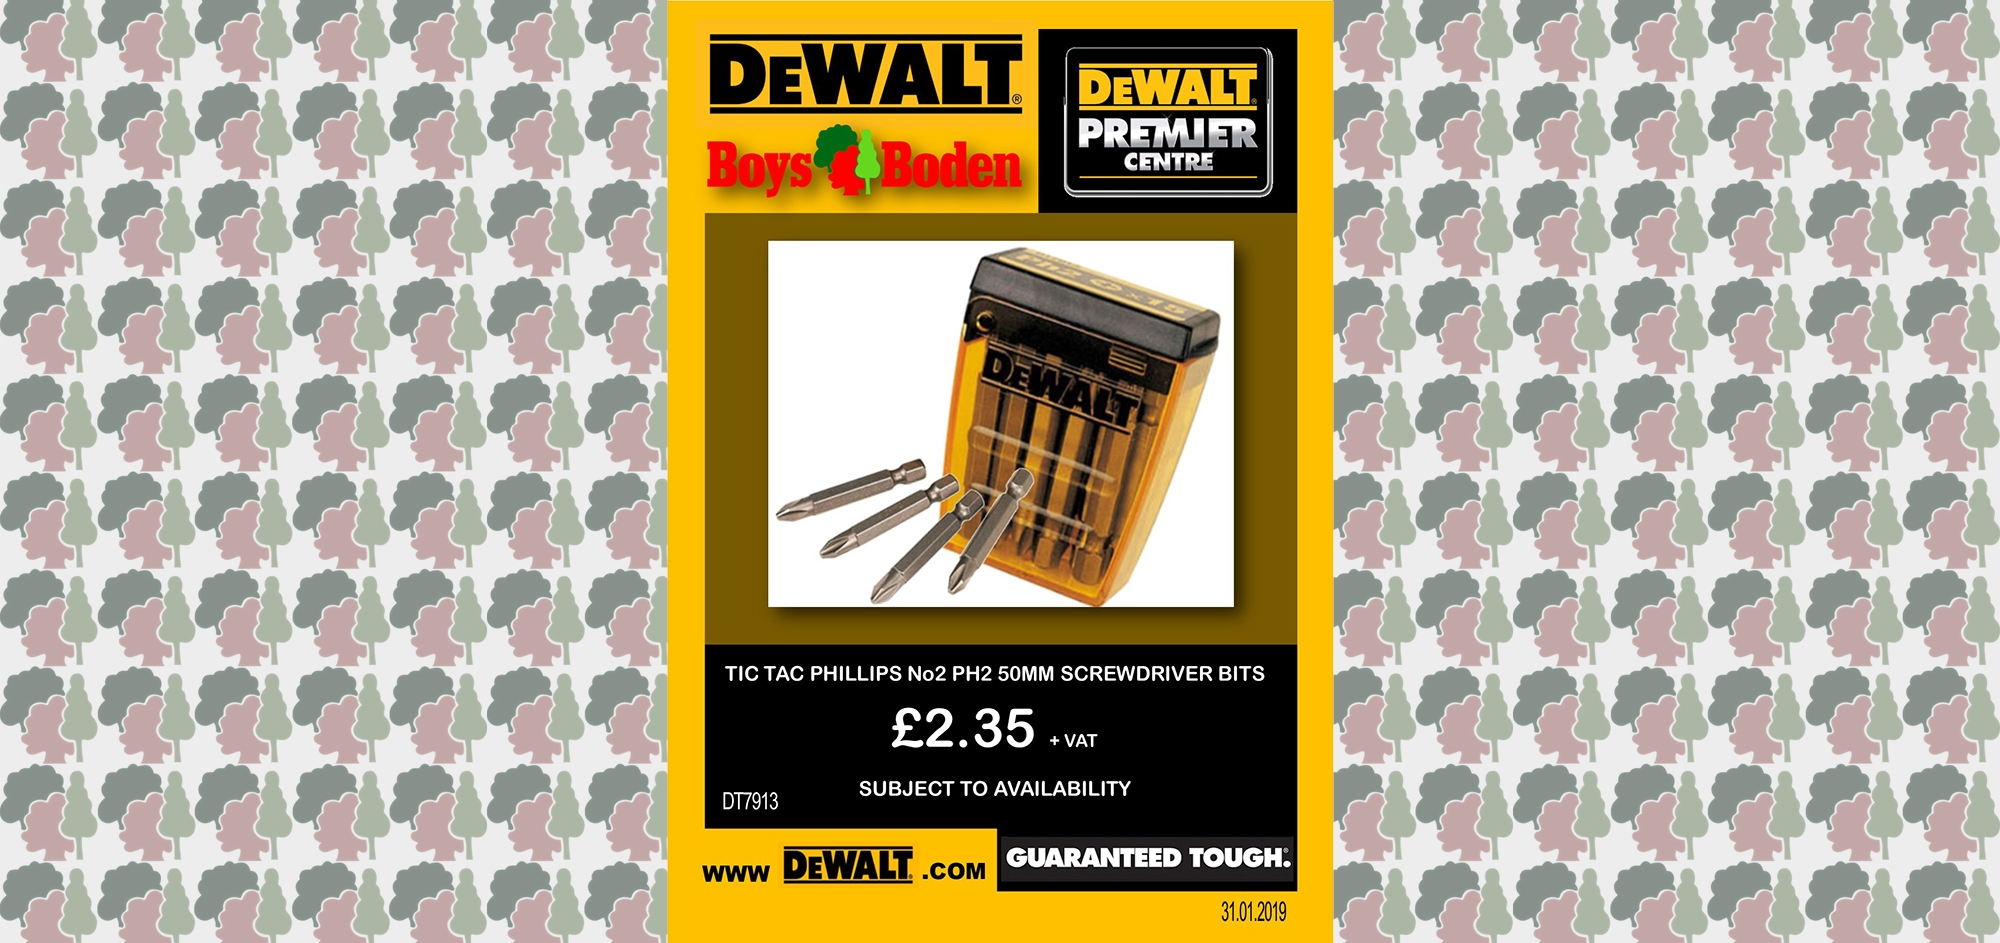 dewalt, screwdriver bits, phillips head, phillips bits